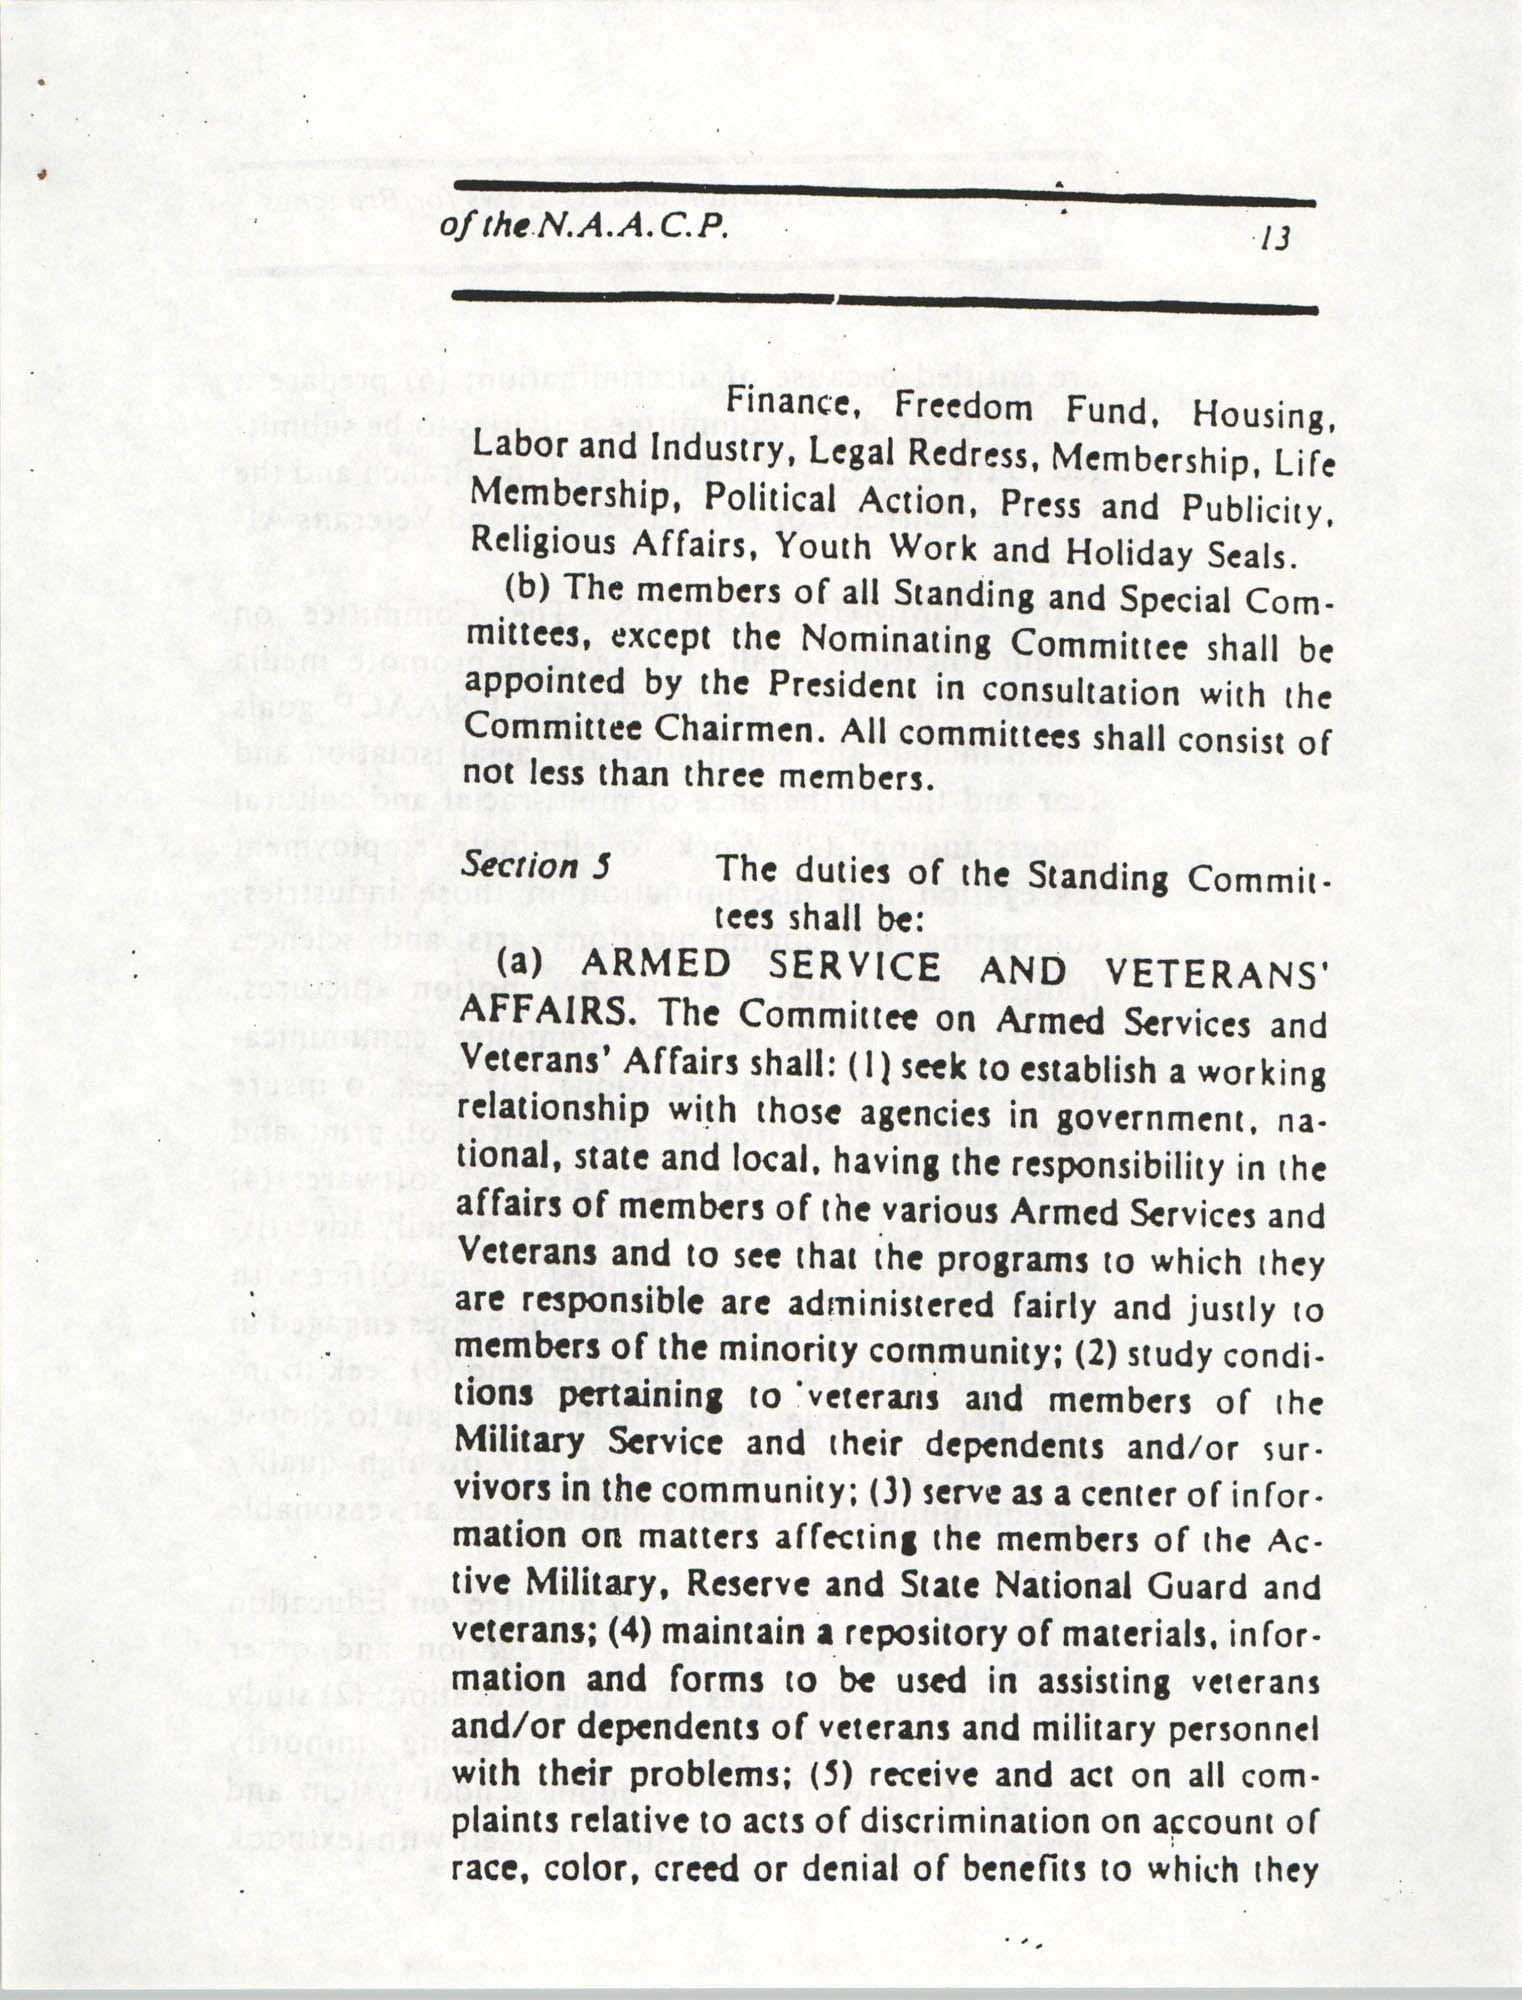 Constitution and By-Laws for Branches of the NAACP, March 1992, Page 13